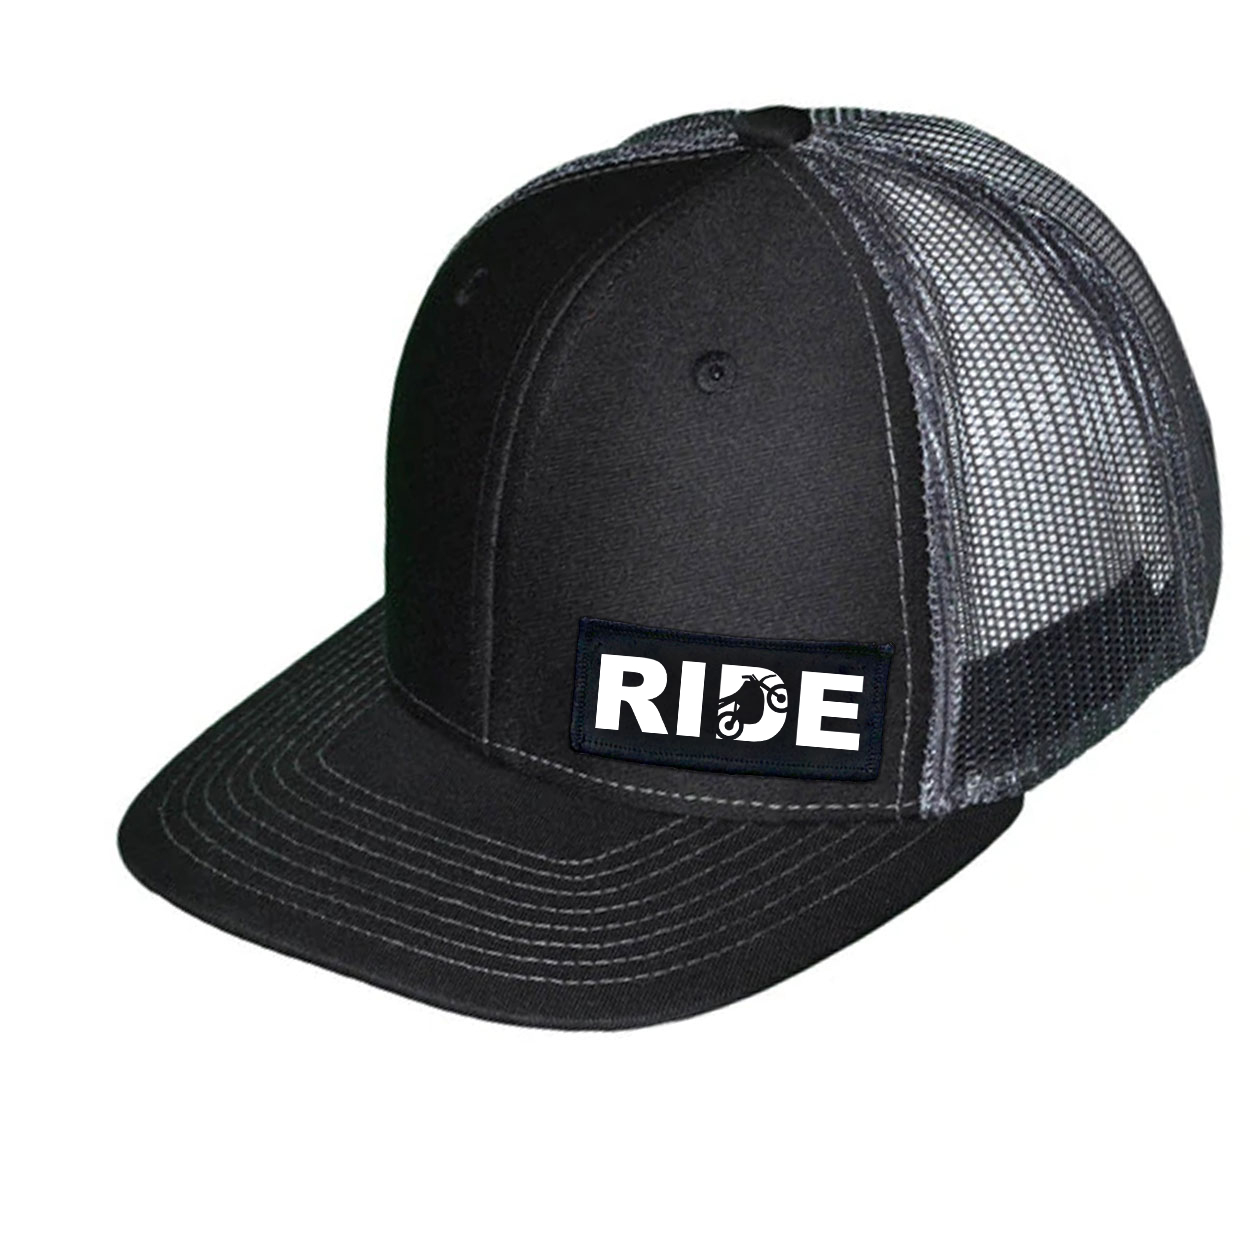 Ride Moto Logo Night Out Woven Patch Snapback Trucker Hat Black/Dark Gray (White Logo)